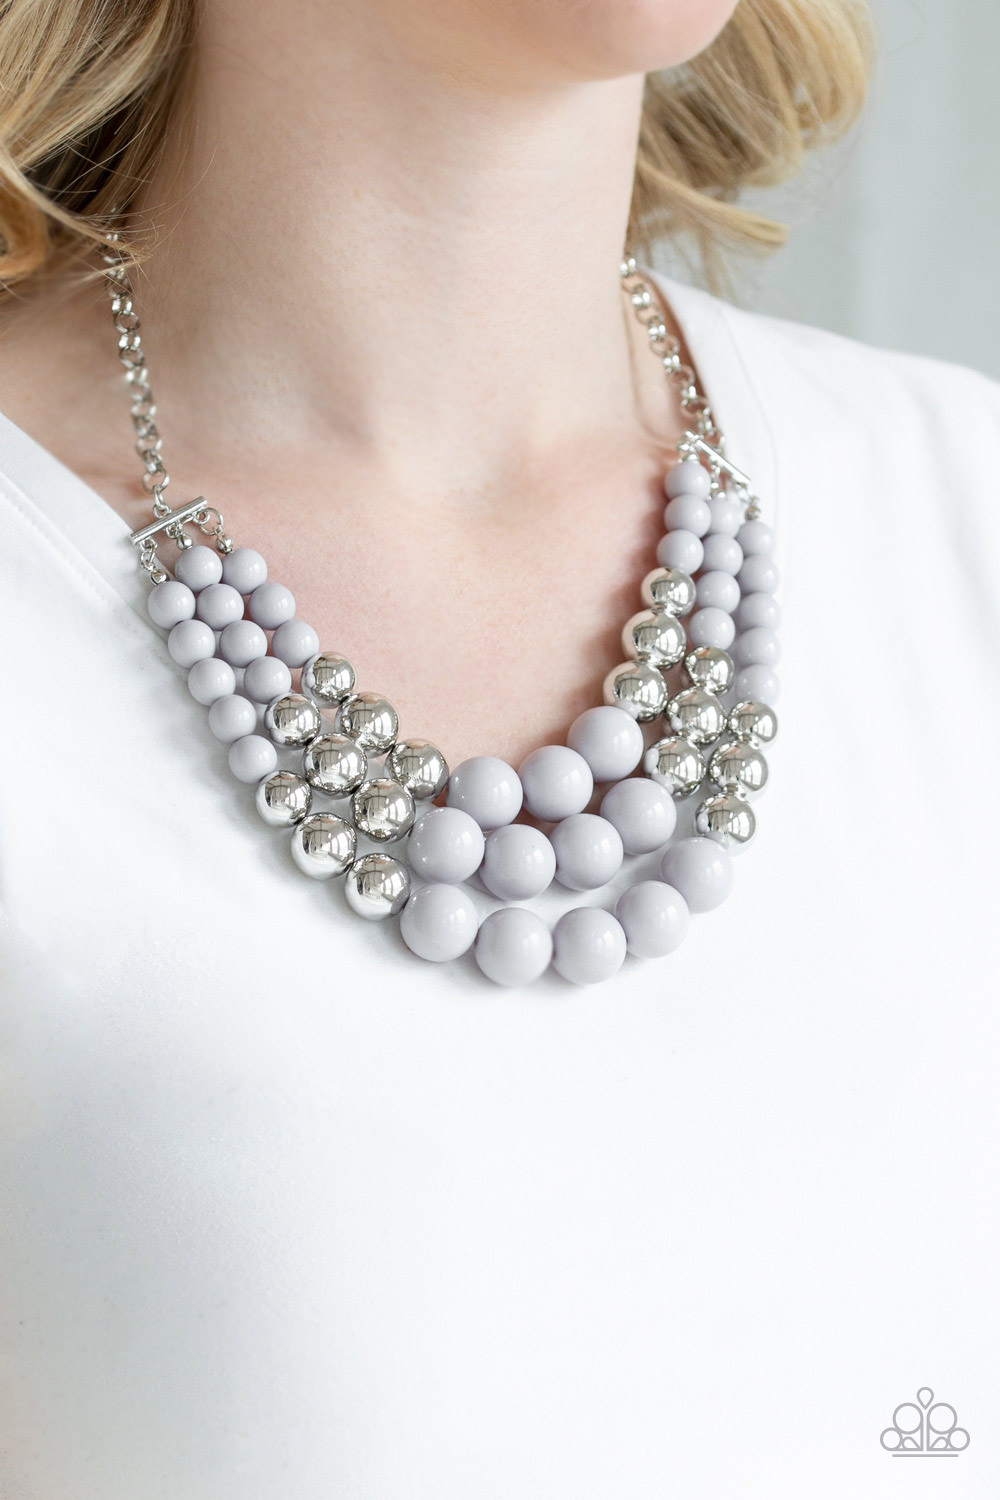 Silver pearl necklace by Paparazzi $5 www.my-bling.com